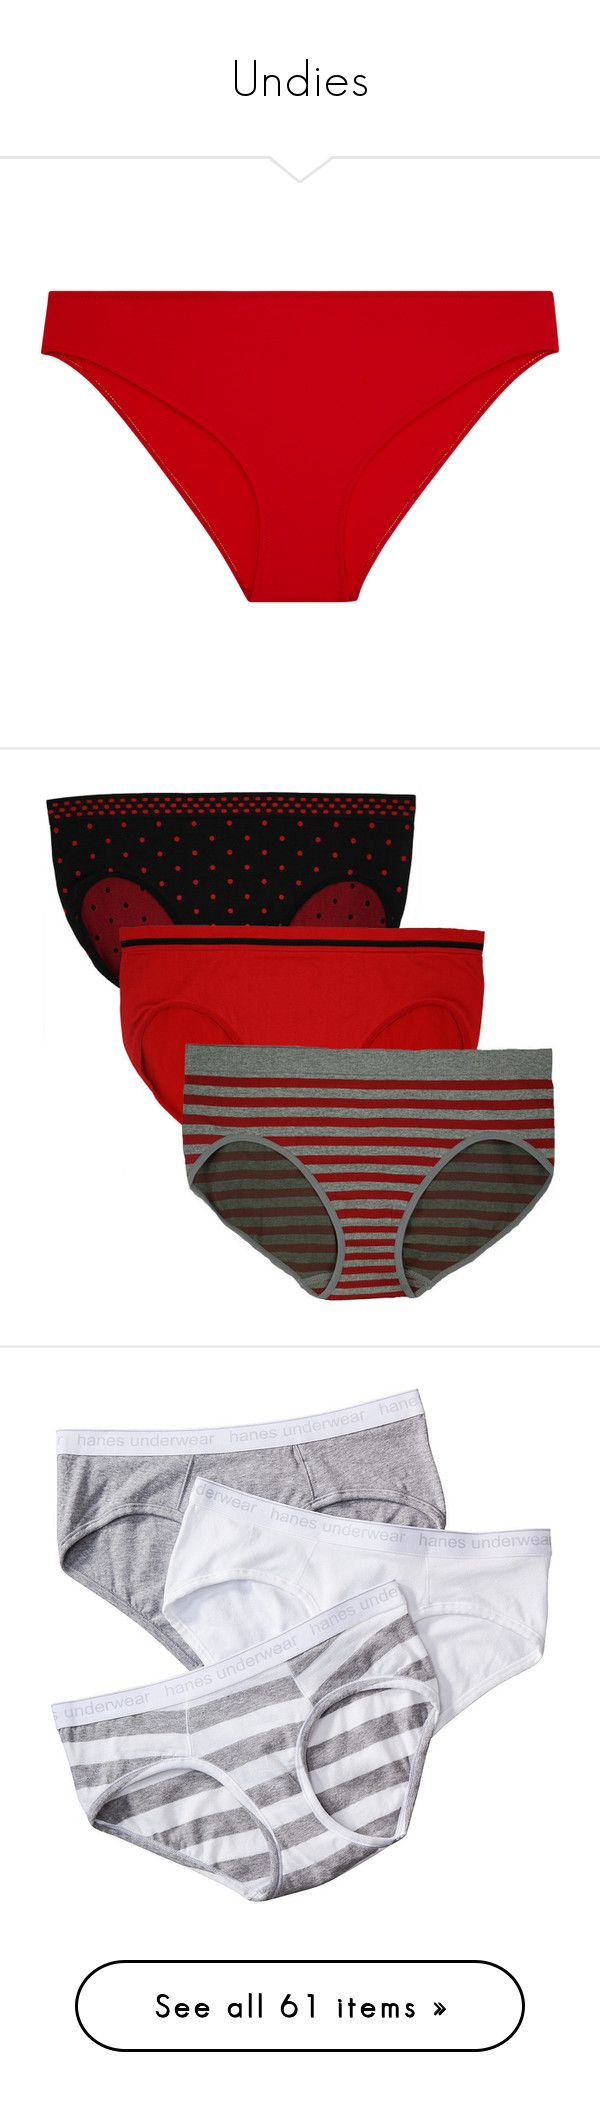 """""""Undies"""" by ashleythesm ❤ liked on Polyvore featuring plus size women's fashion, plus size clothing, plus size intimates, plus size panties, intimates, red grey stripes black dots, dotted panties, plus size bikini bottoms, plus size panty and polka dot panty"""